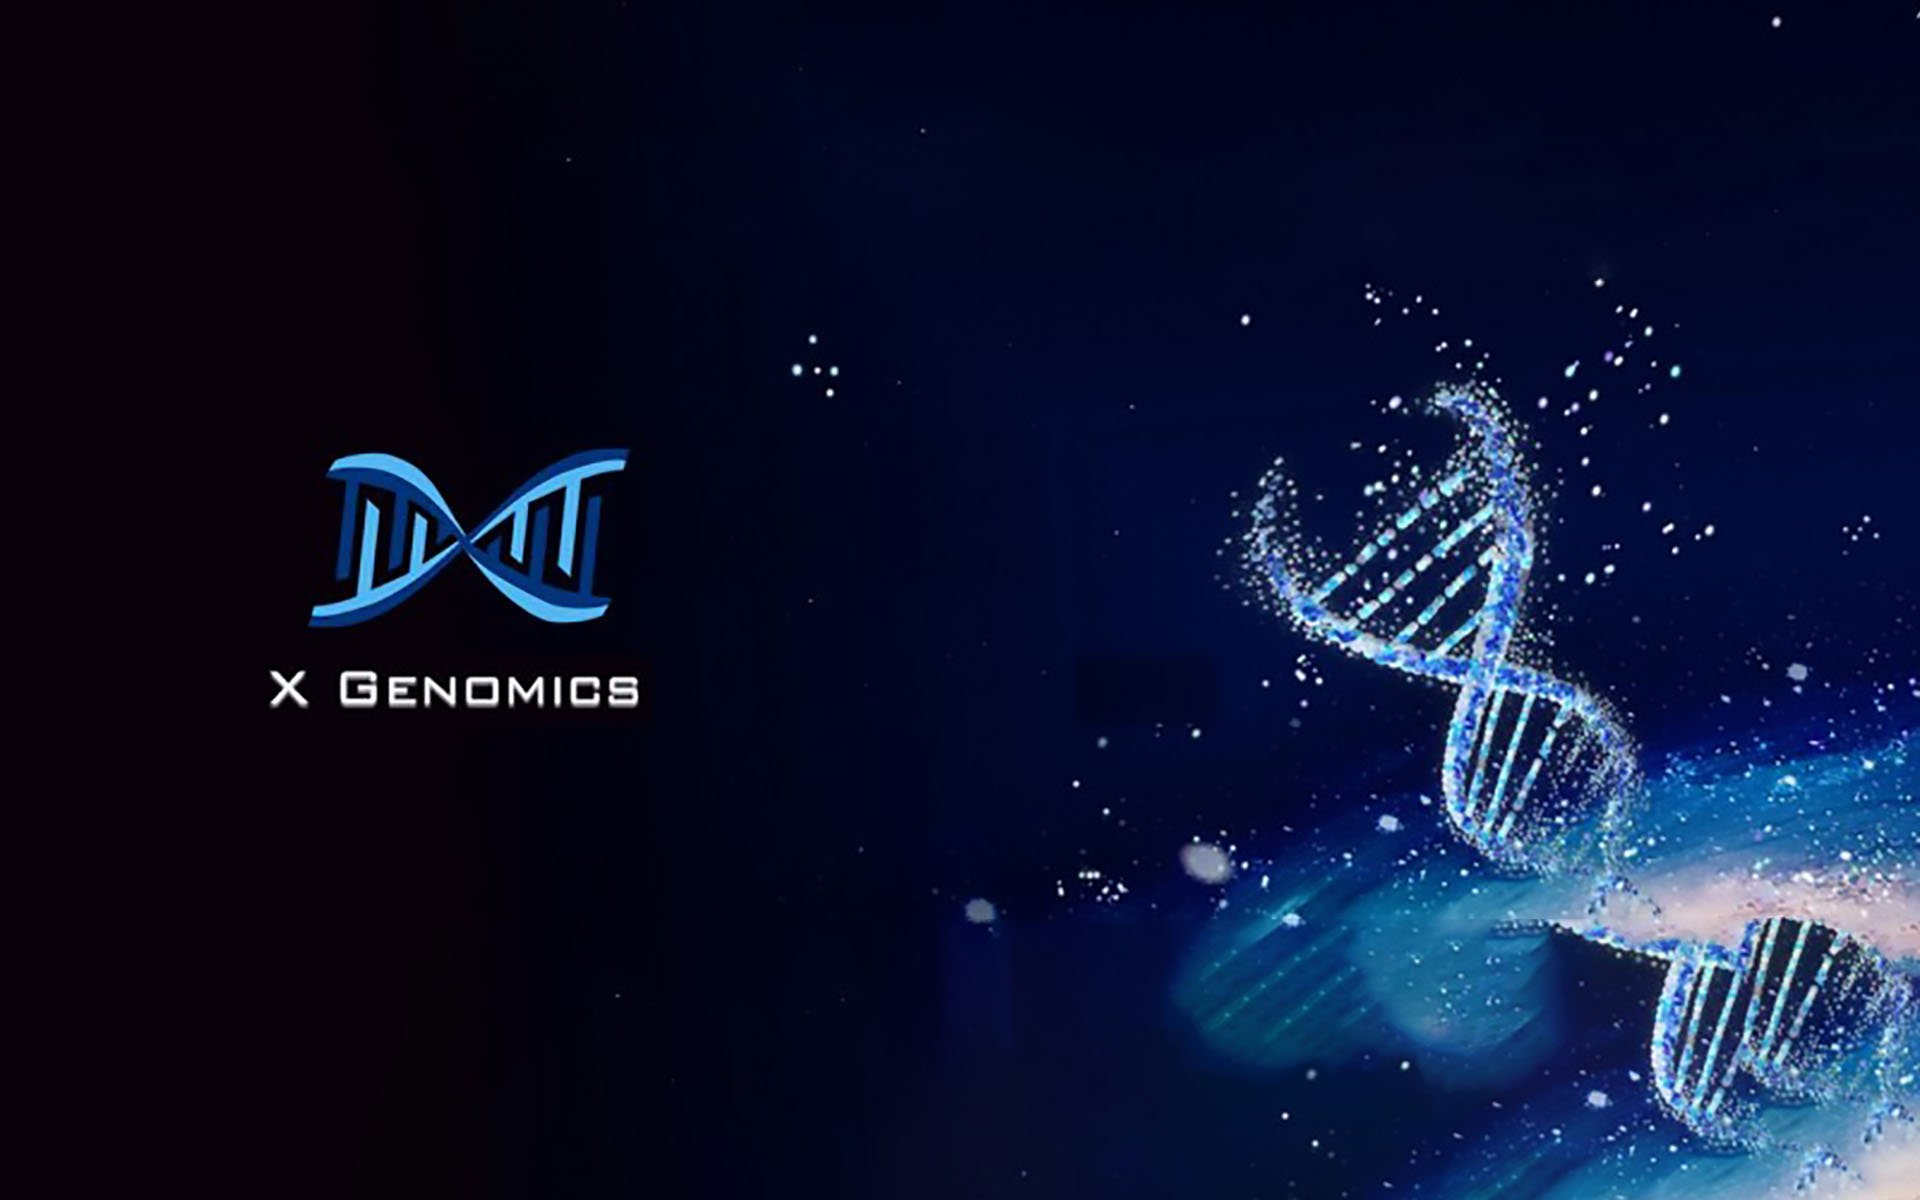 X Genomics Unlocks Life Sciences Putting Big Human Genetic Data on the Blockchain